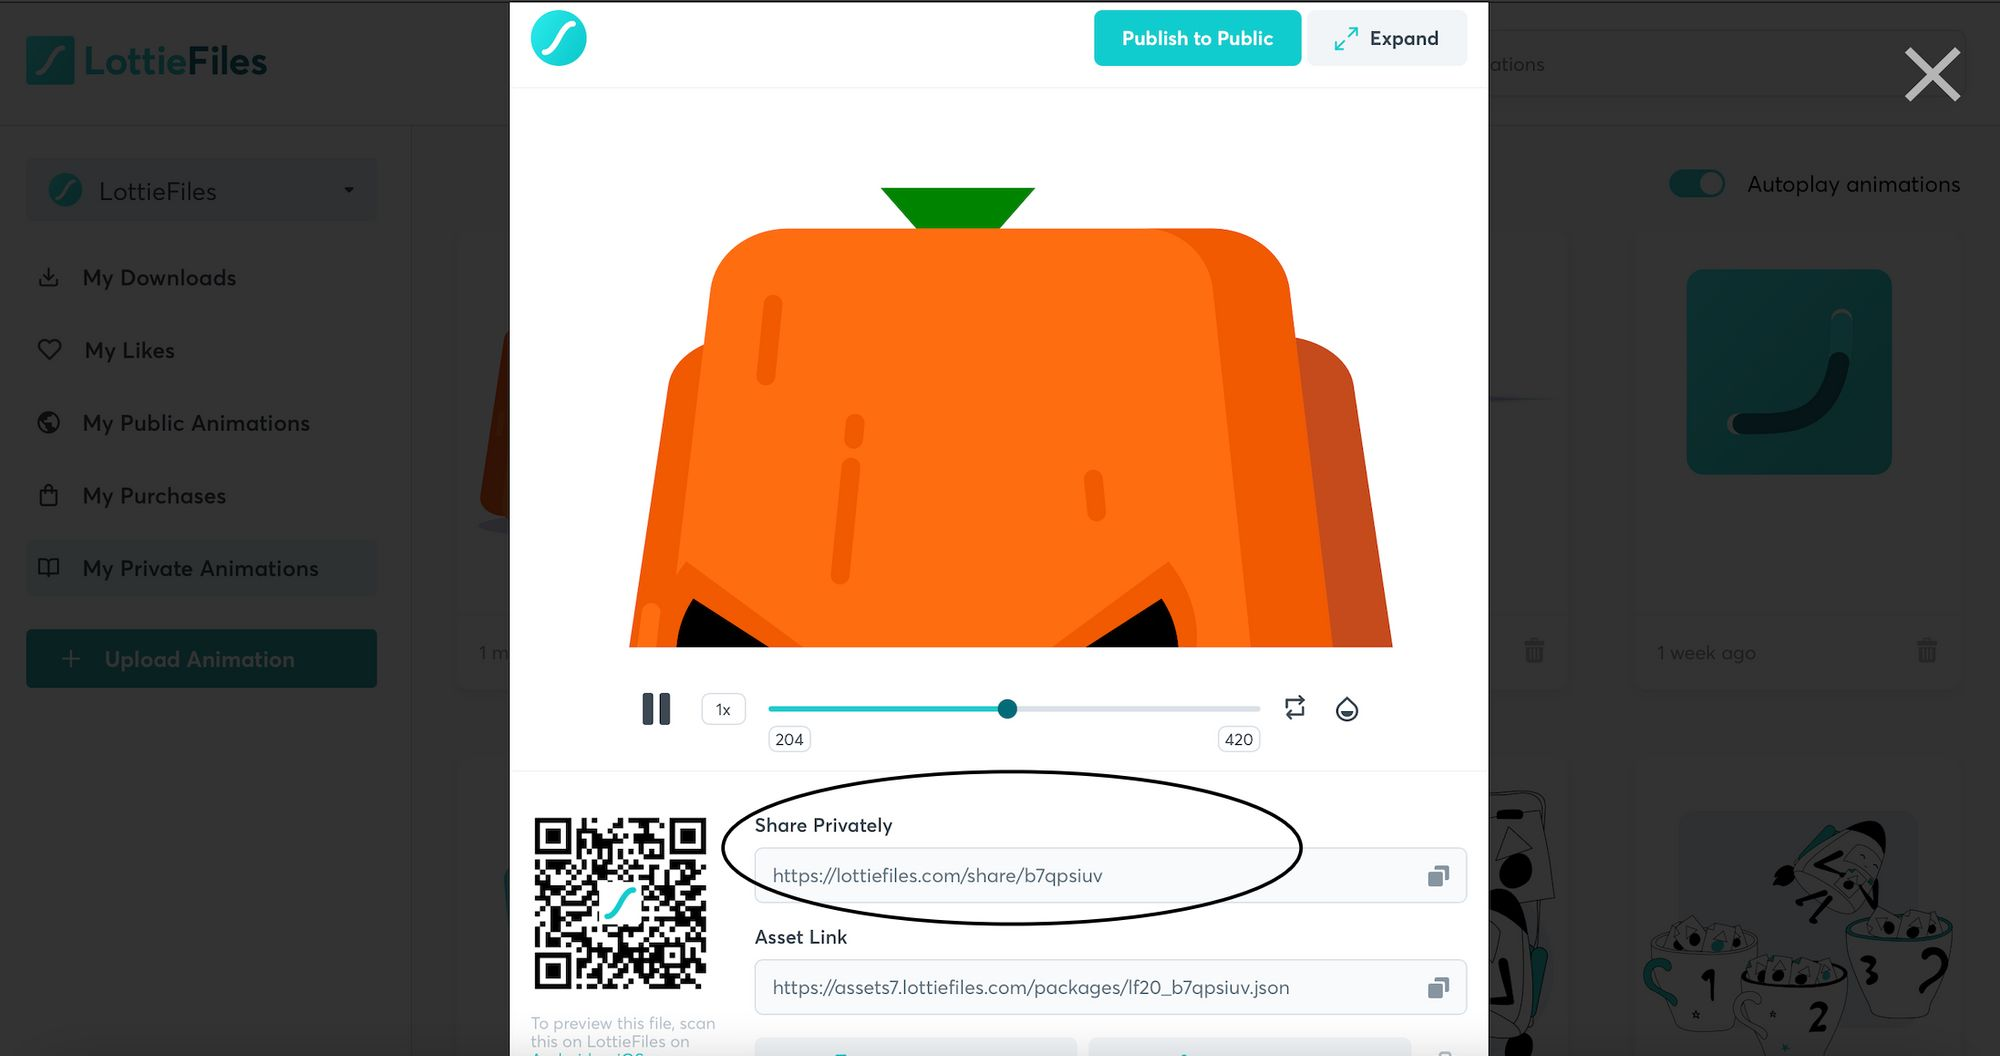 Share animation privately with Private Link